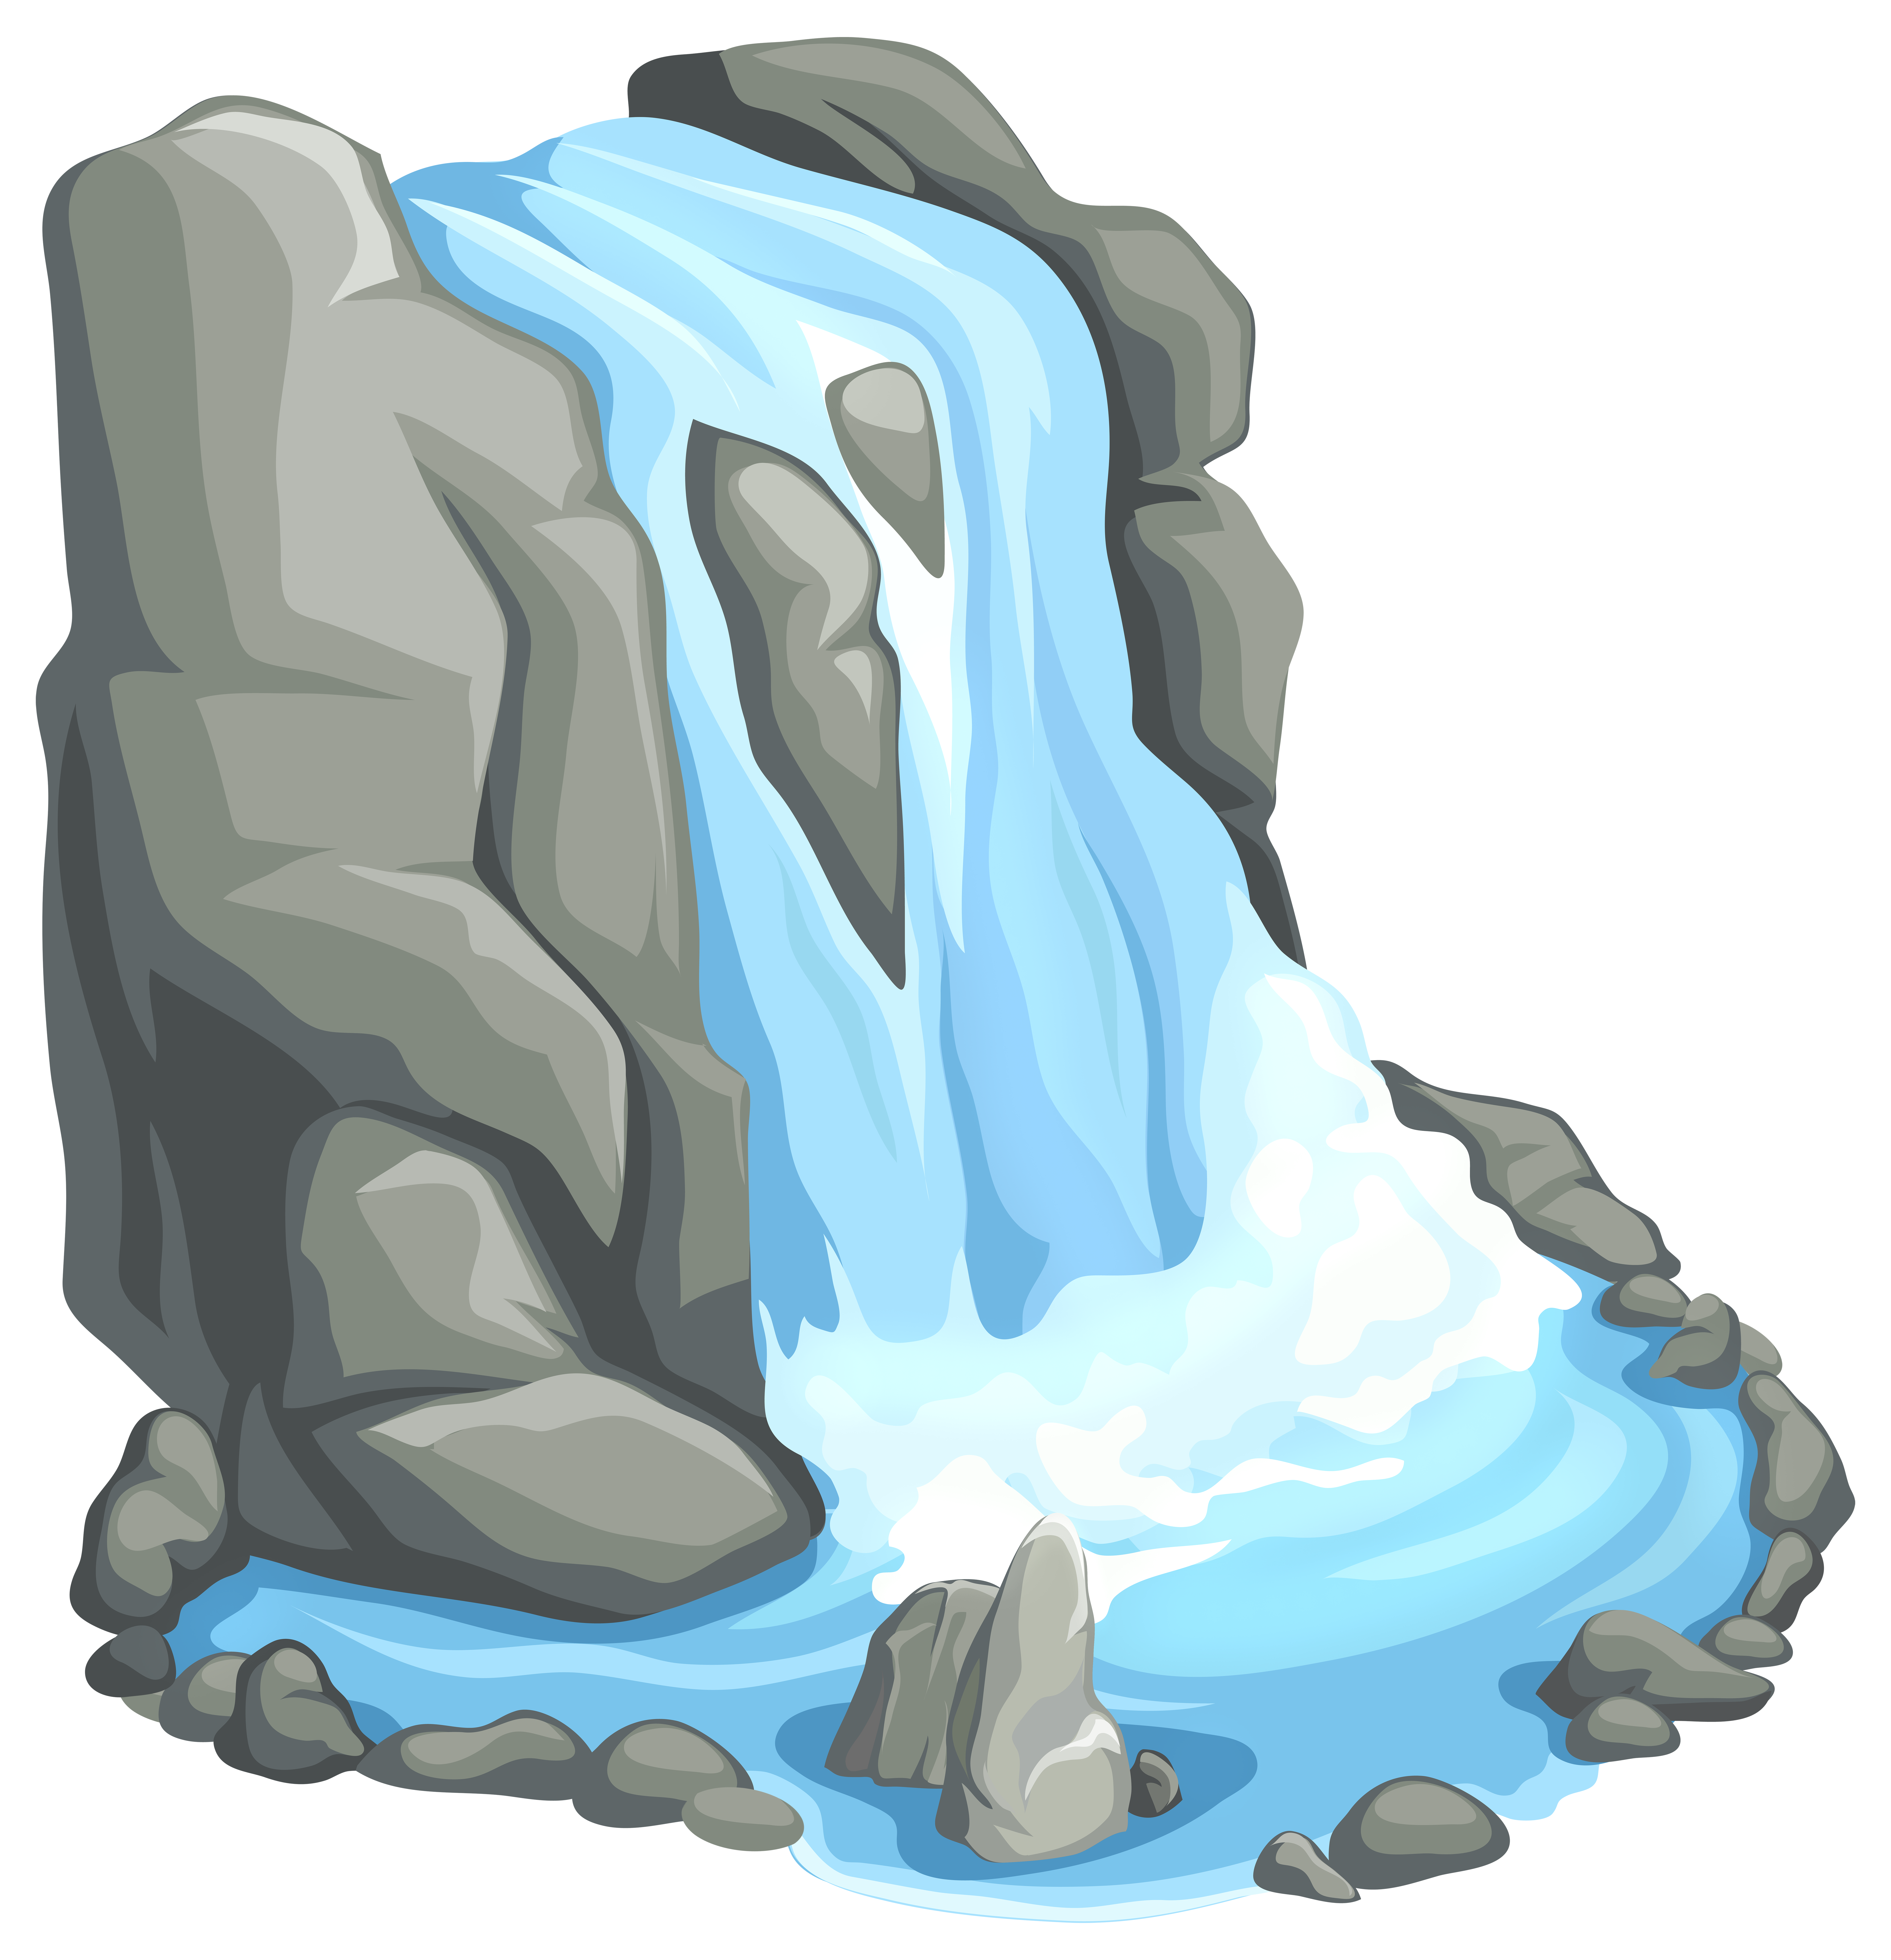 Waterfall clipart vector royalty free Waterfall PNG Clip Art - Best WEB Clipart vector royalty free